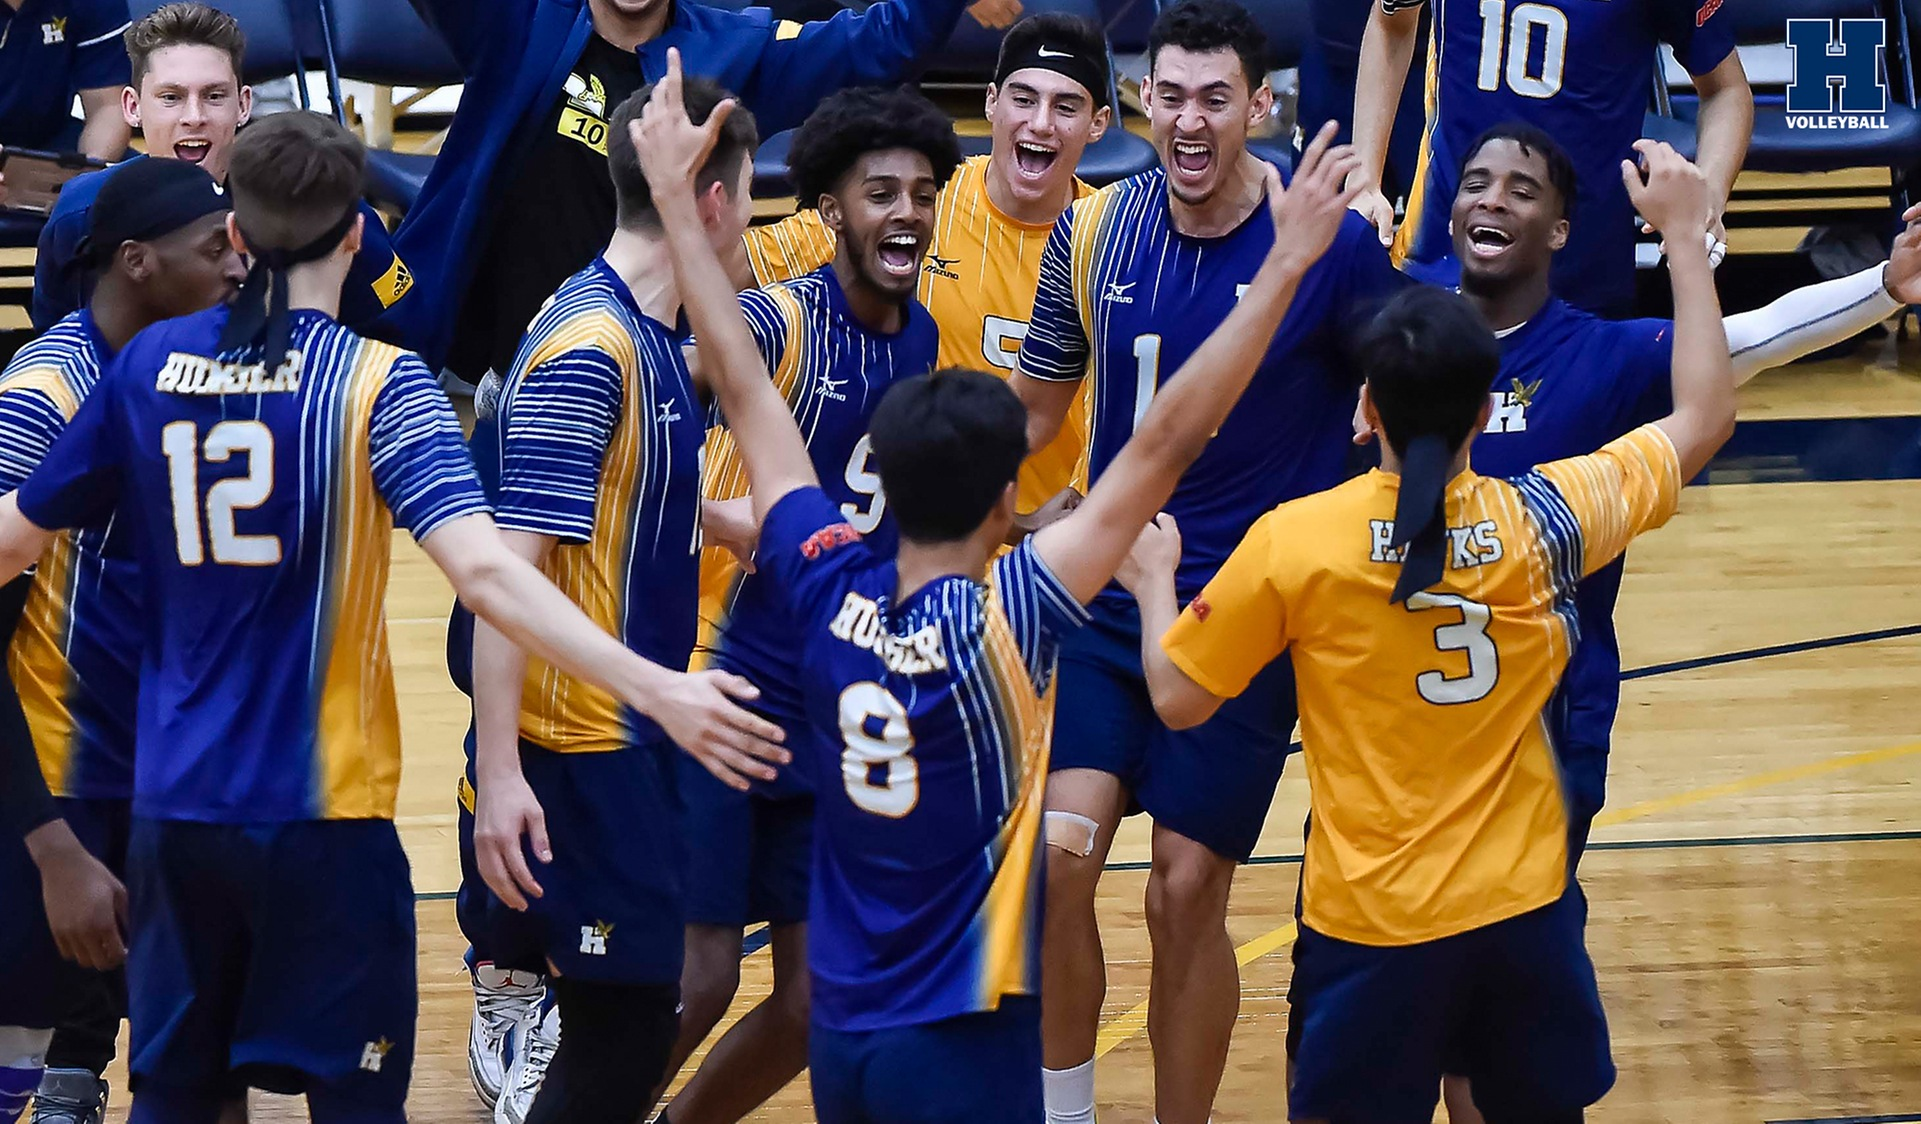 No. 2 Men's Volleyball Grab Sixth Straight Win